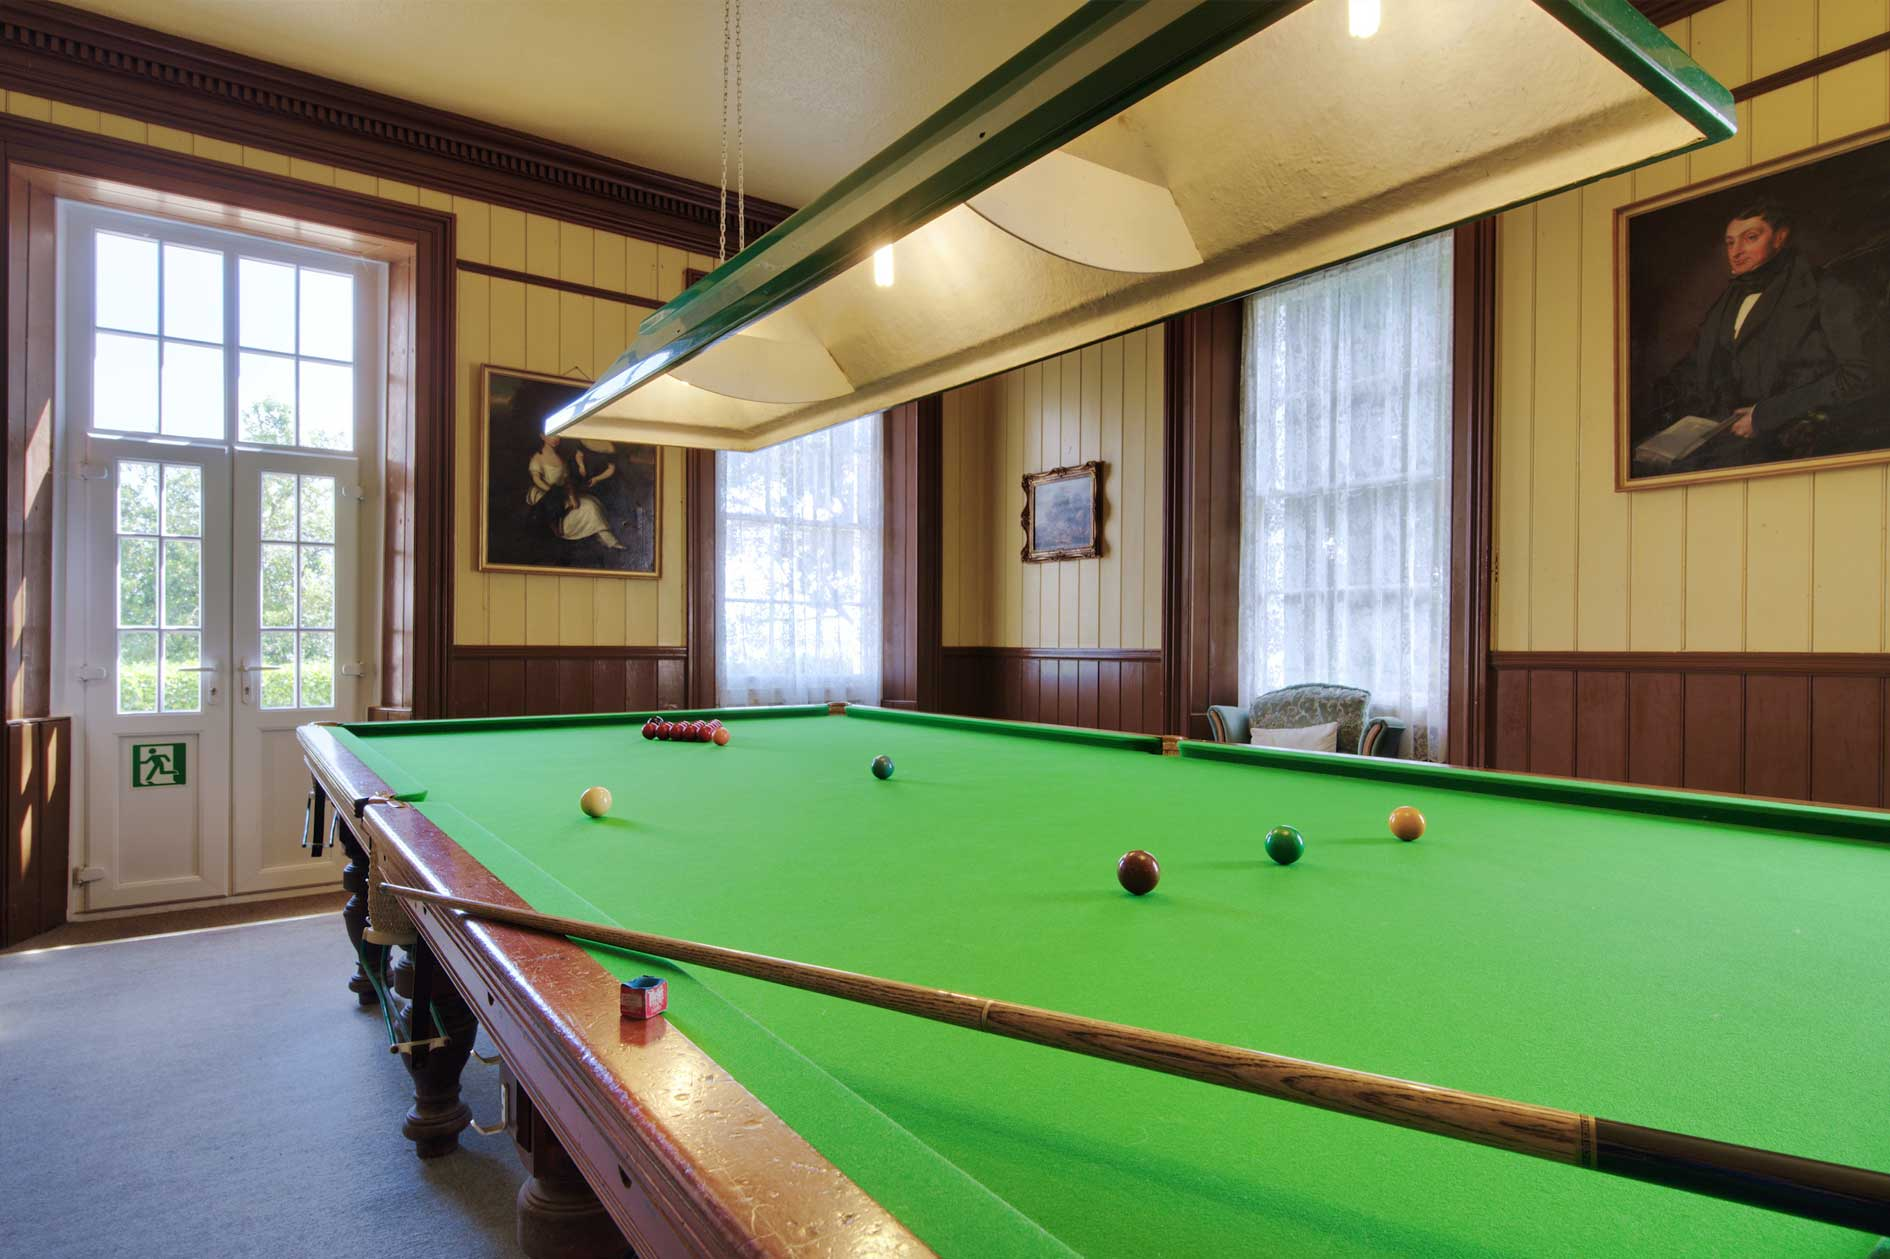 Snooker Table In Room With French Doors And Period Portrait Paintings